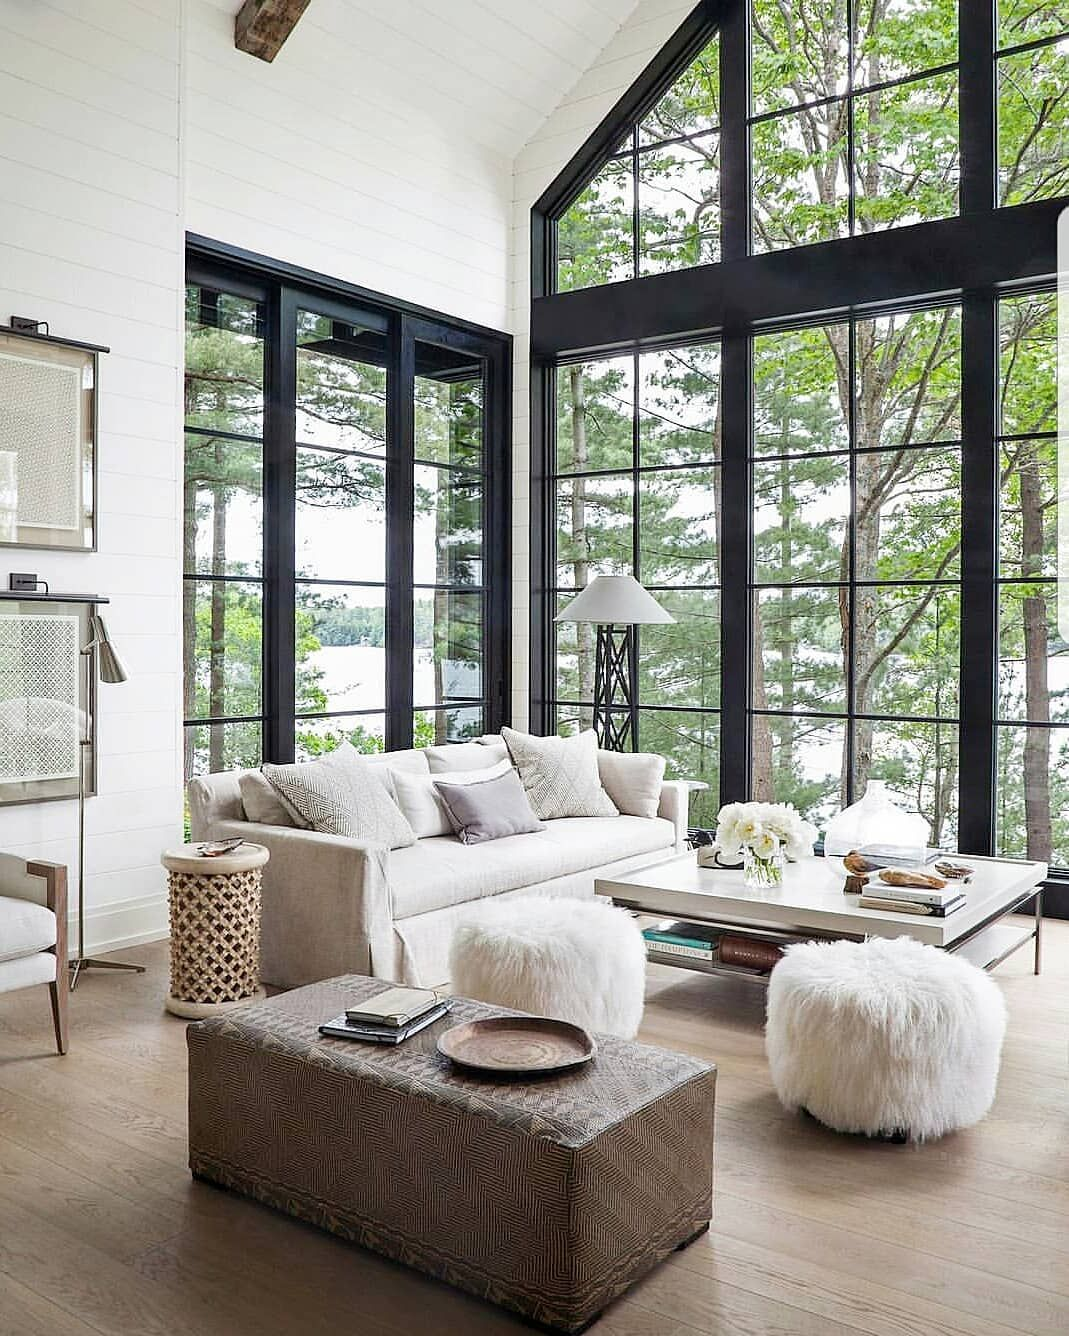 Jordan On Instagram I Like Big Windows And I Cannot Lie The Bigger The Window The Better In My Opinio Modern Lake House Winter Living Room Lakehouse Decor